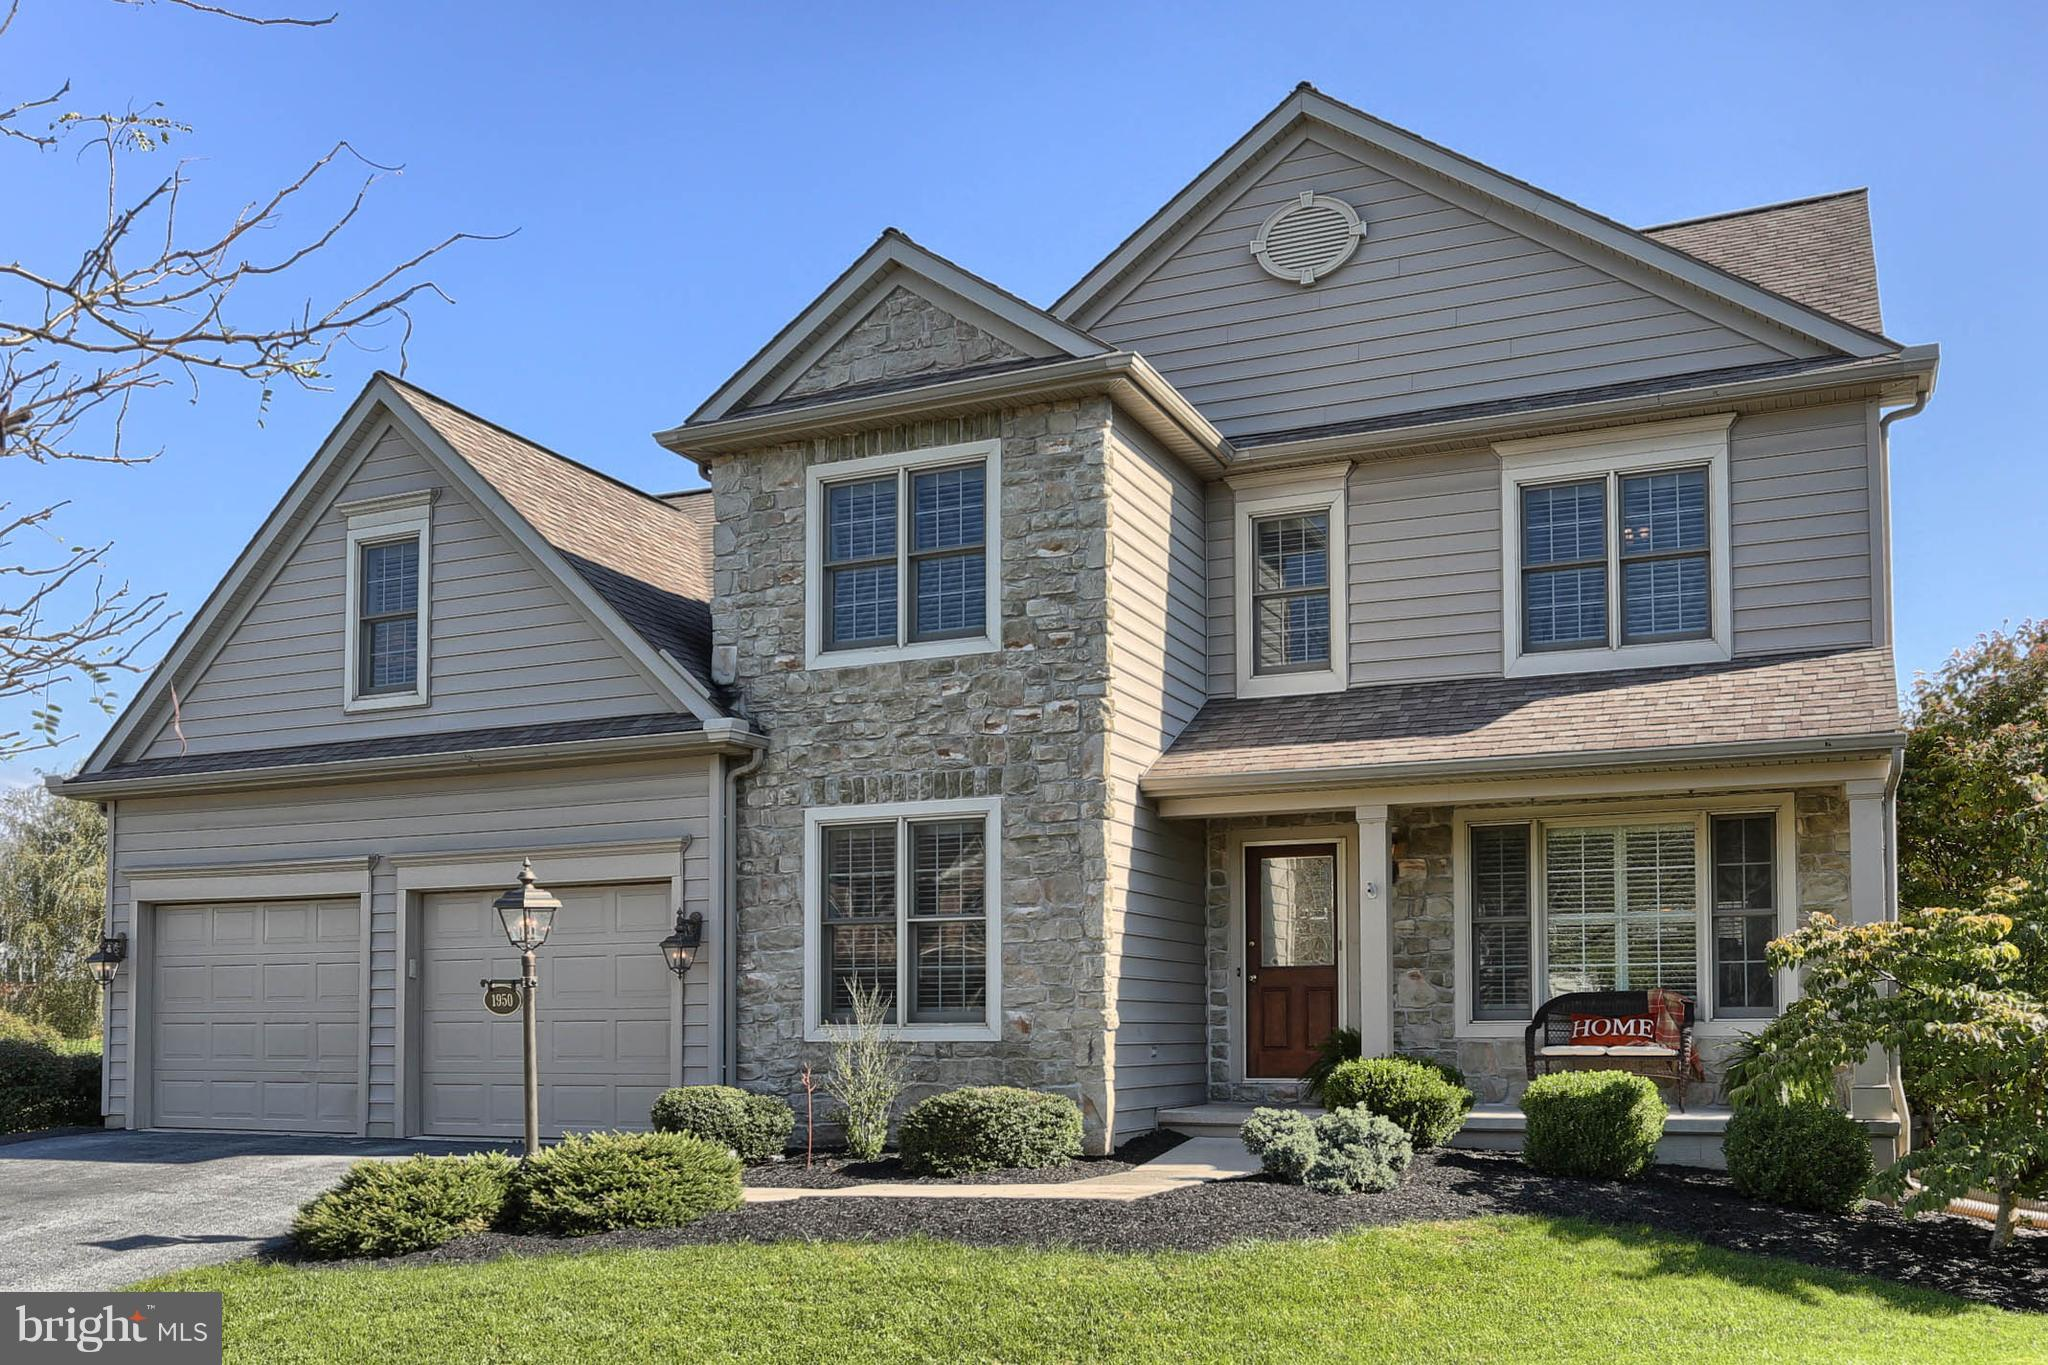 1950 GRIST MILL CIRCLE, HERSHEY, PA 17033